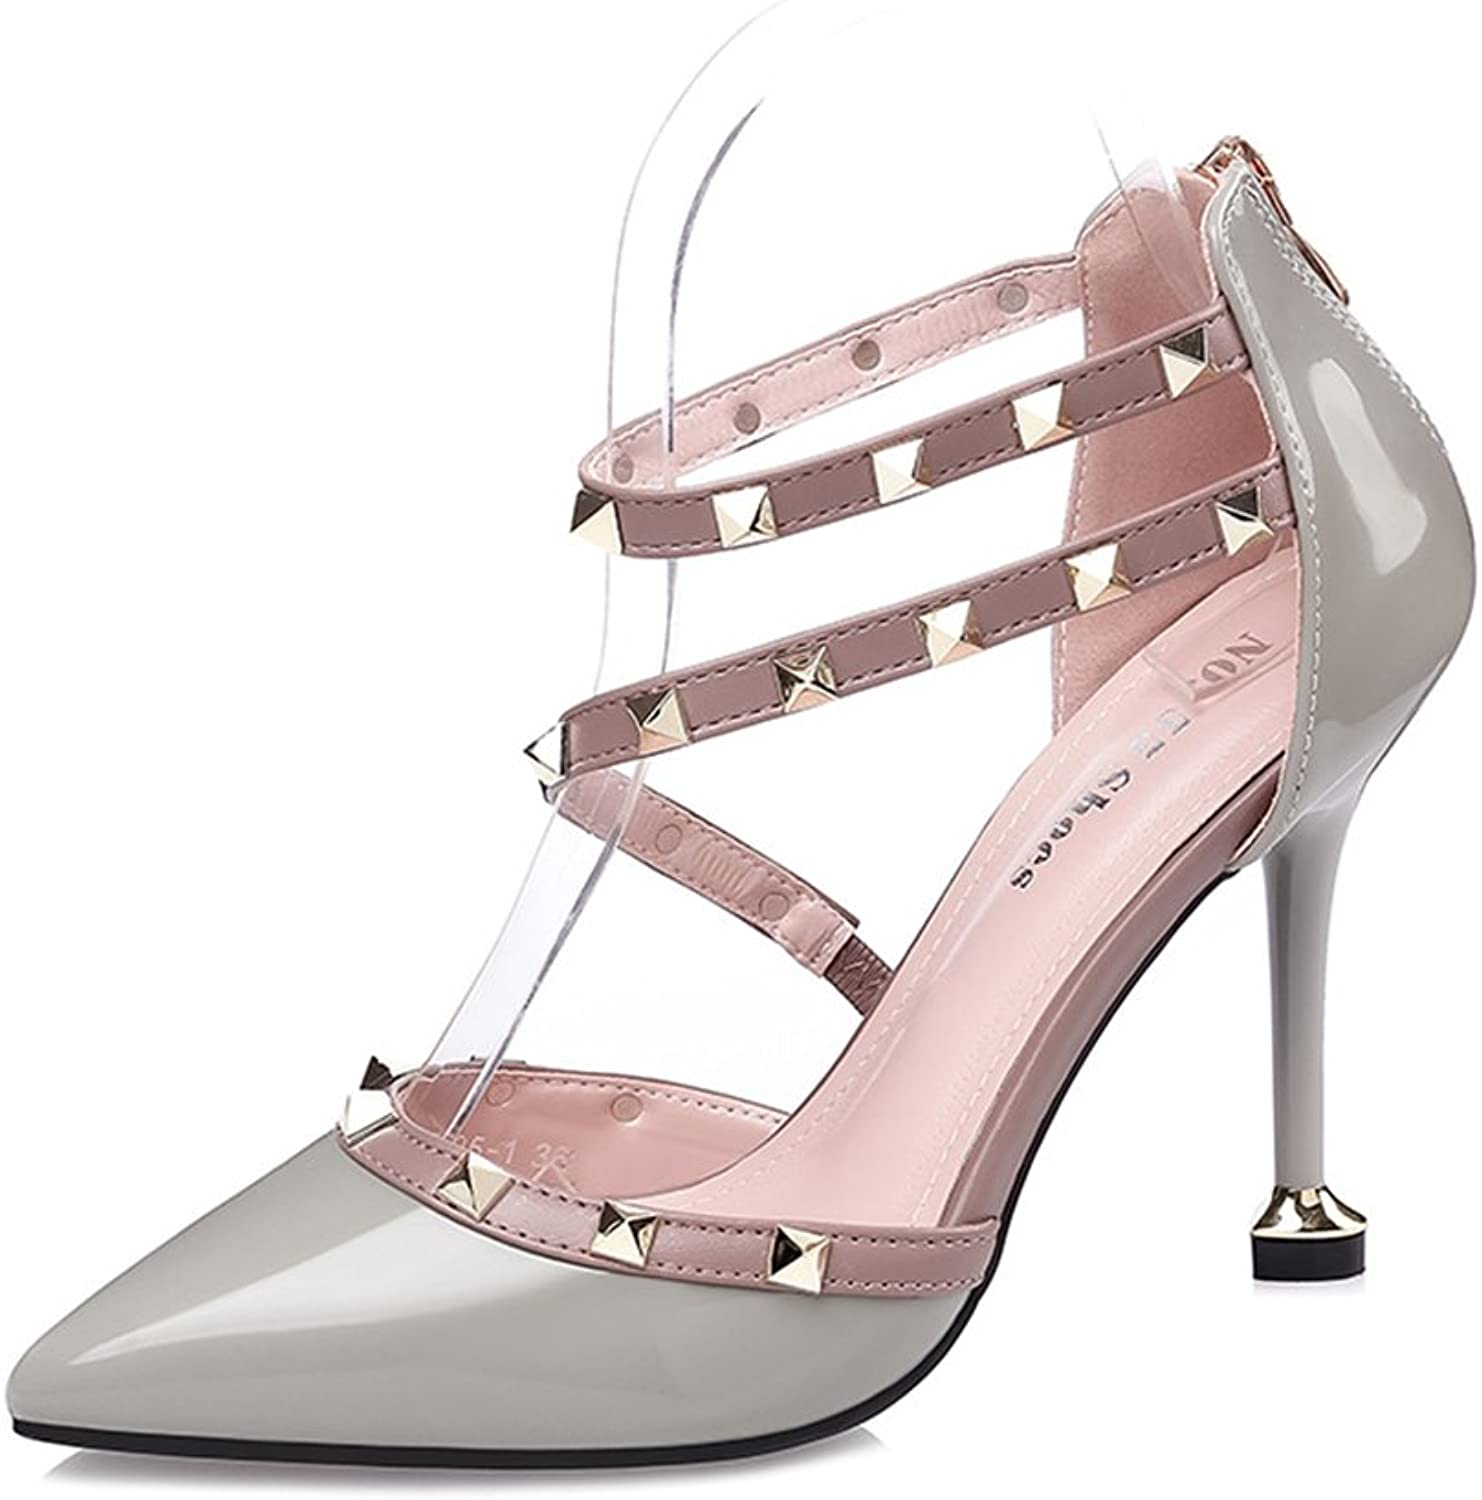 FORTUN Personalized Women's shoes Pointed Toe high Heels Rivets Shallow Sandals